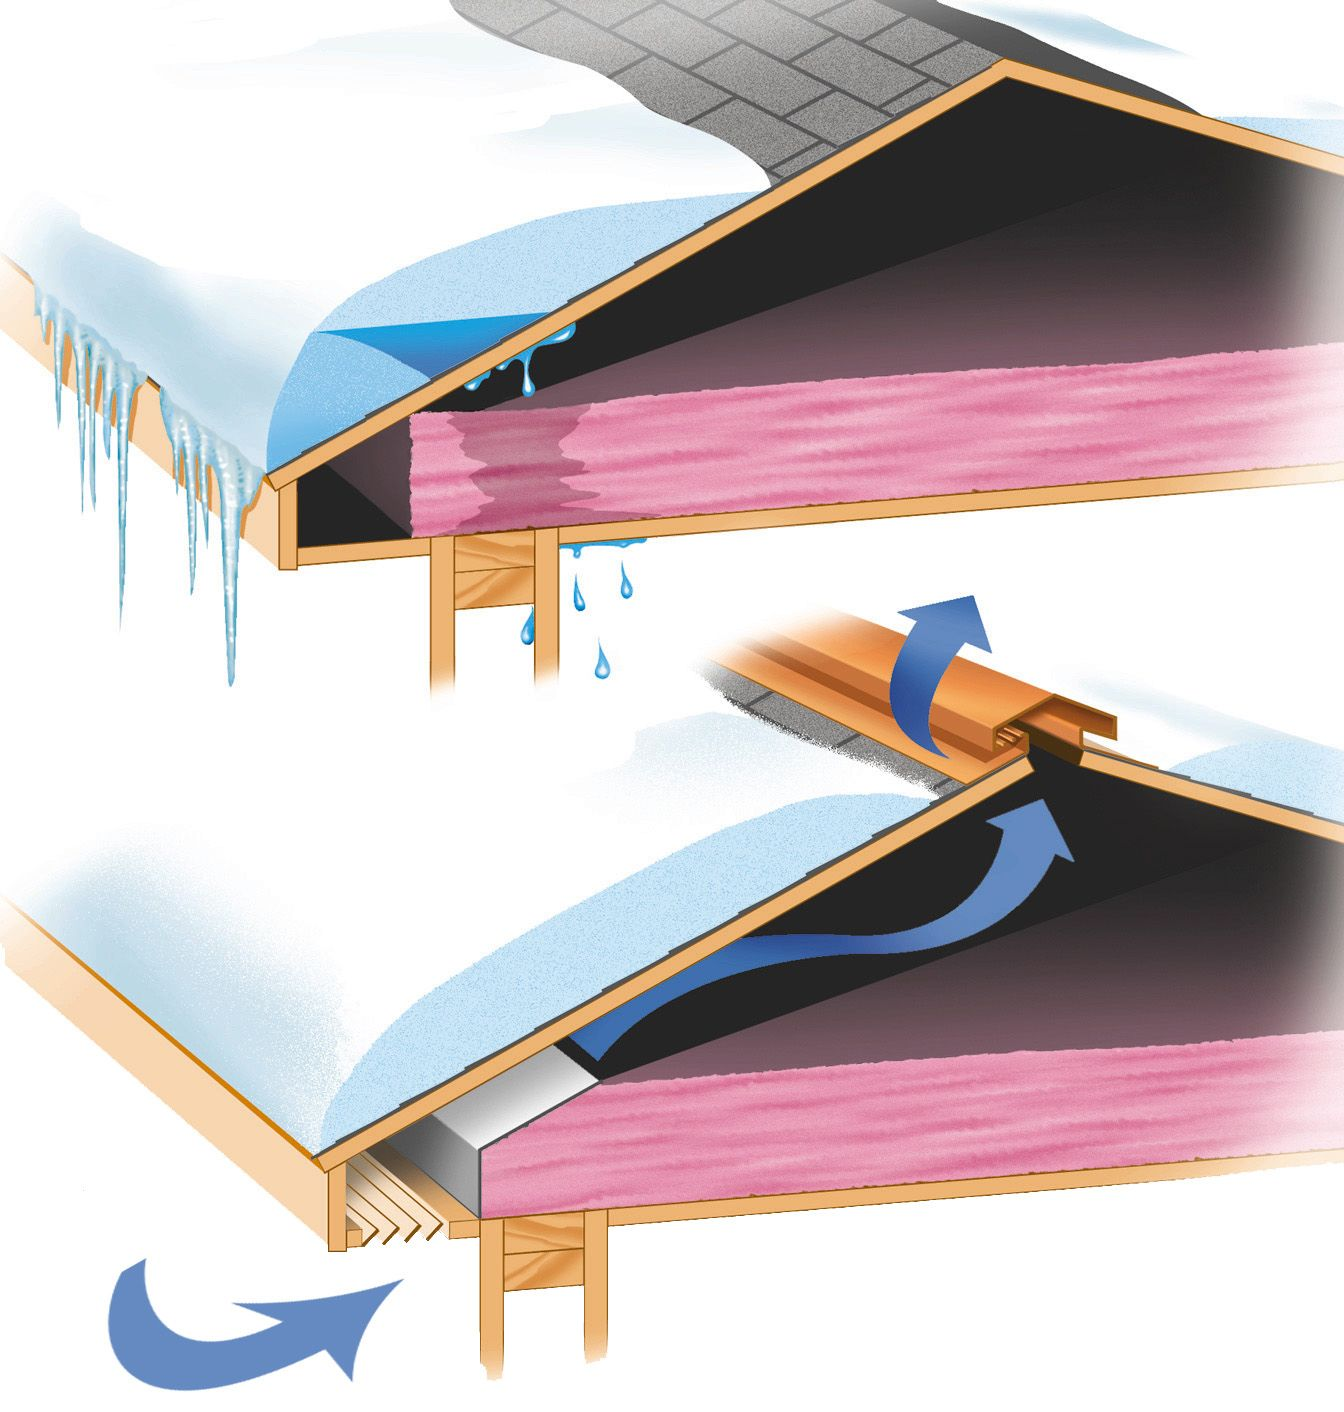 Snow And Ice Are Beautiful But They Can Cause Damage If You Don T Winterize Your Home Save Money And Stroitelstvo Cherdachnye Prostranstva Stroitelstvo Doma